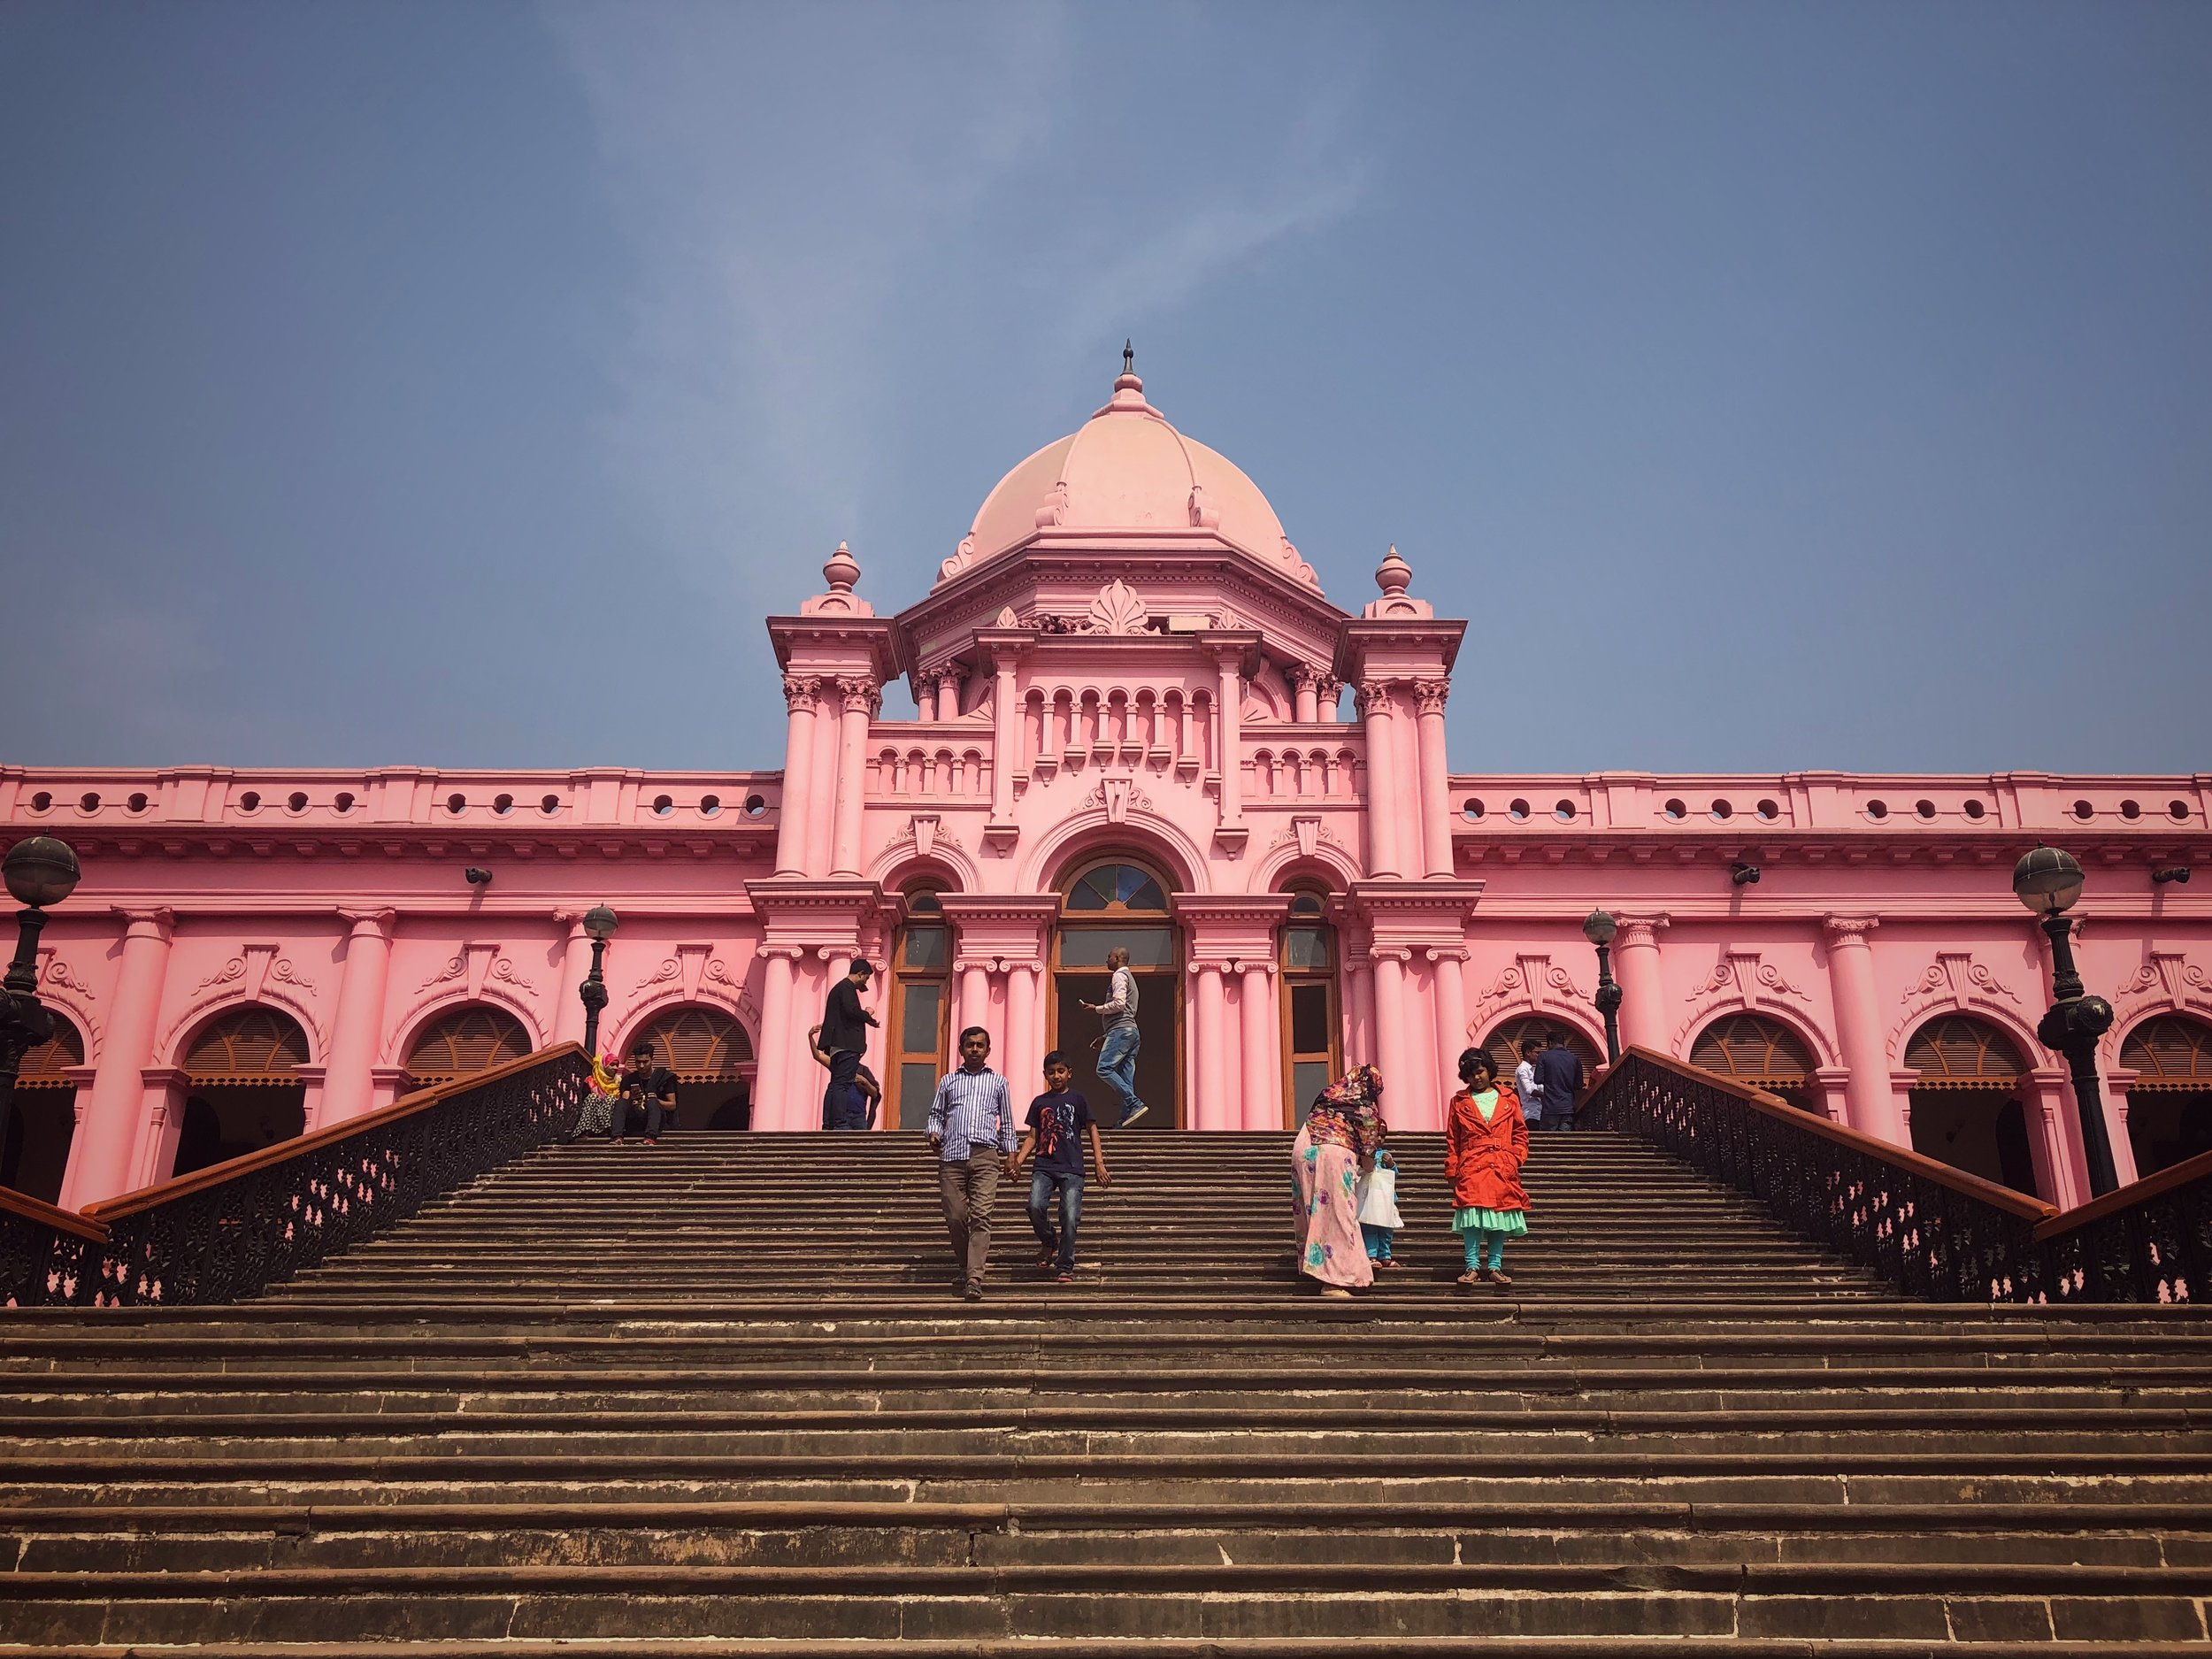 The Pink Fort sits on the banks of the Buriganga River and once housed local dignatories associated with the British Imperialists.